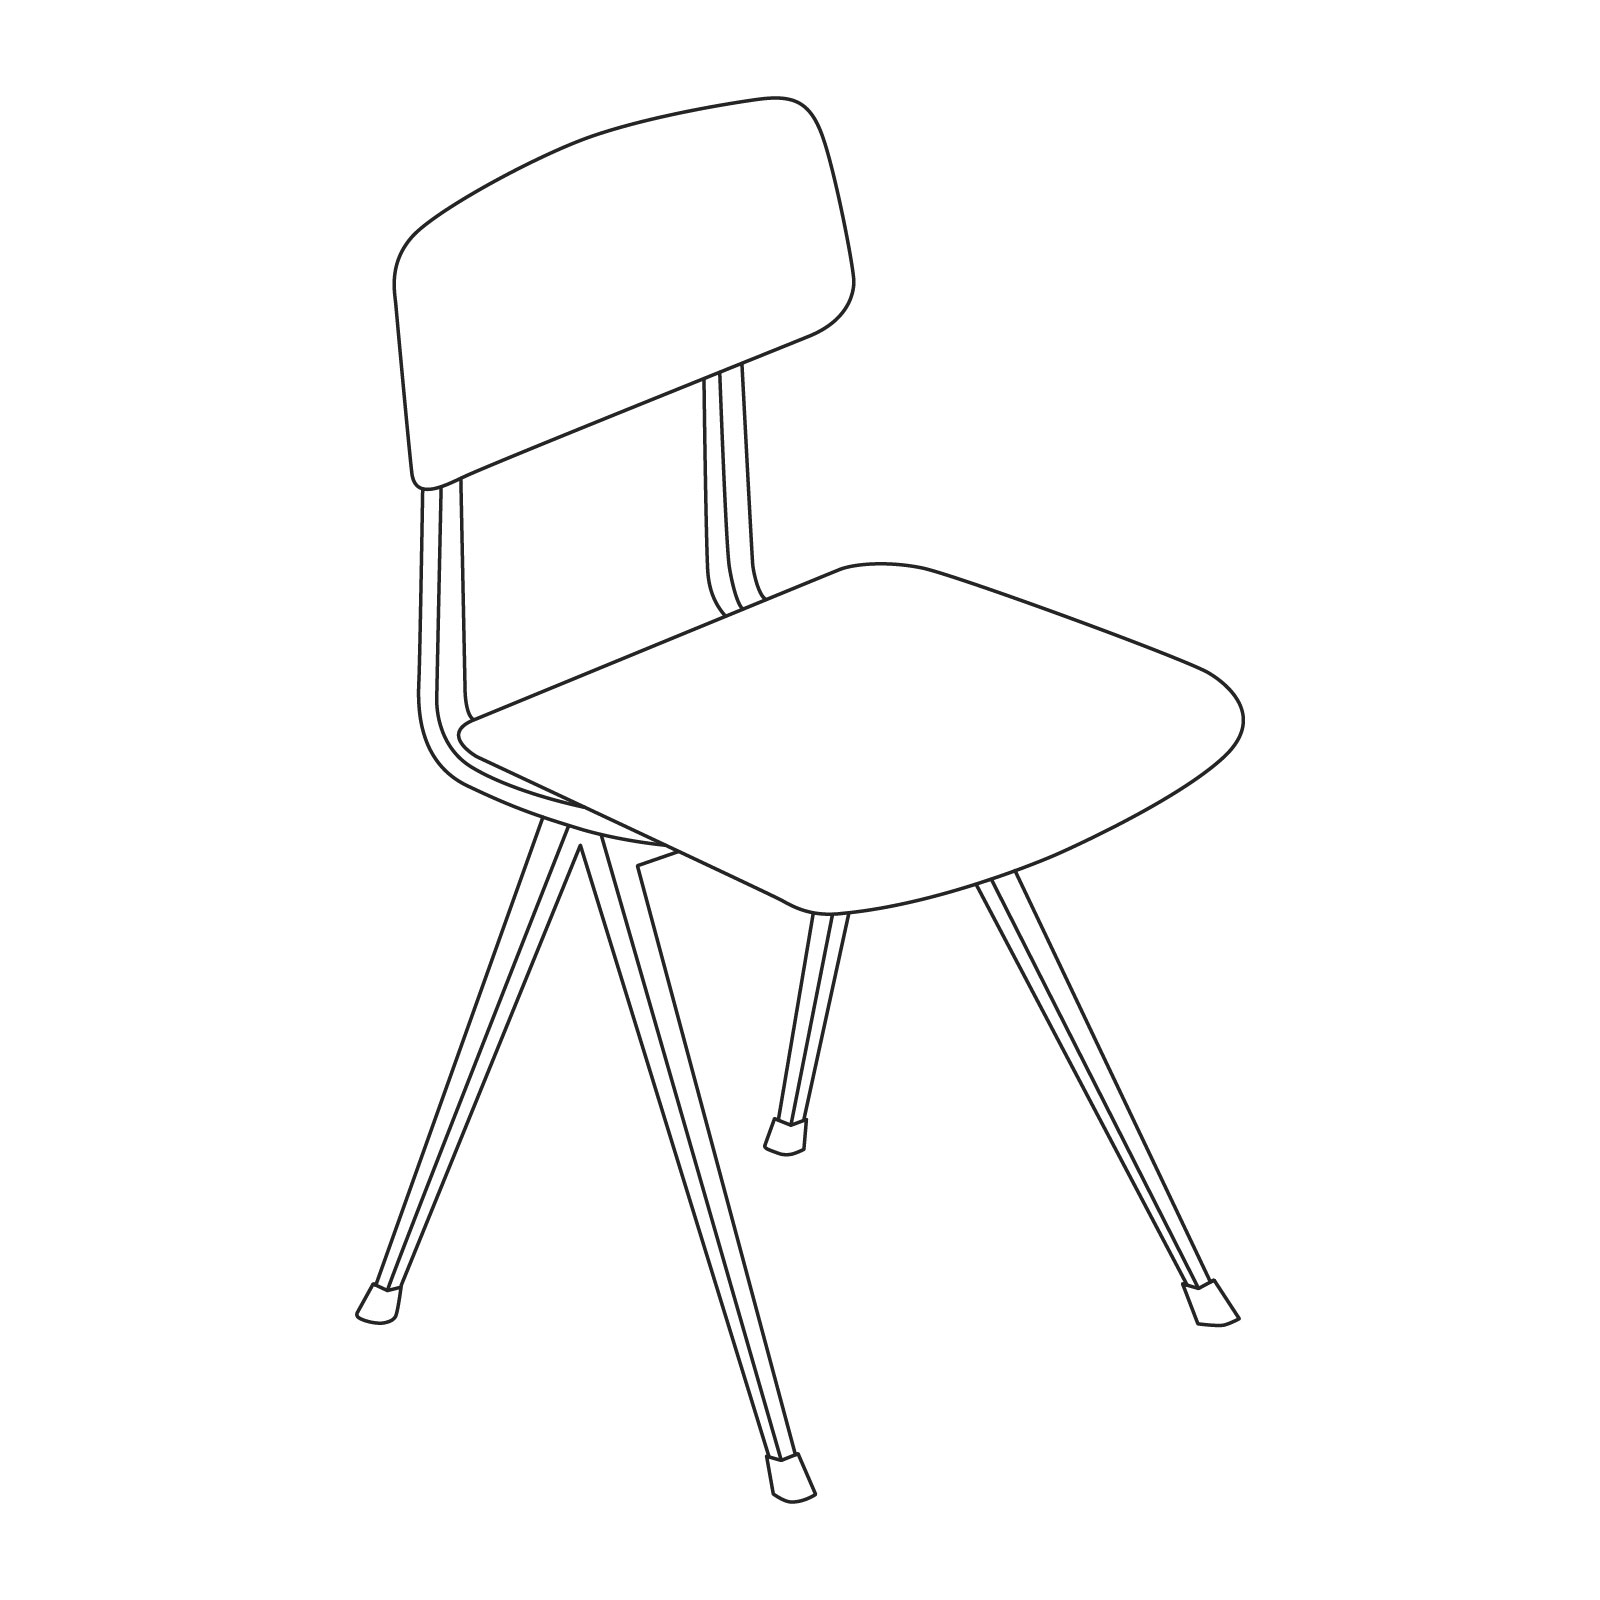 A line drawing of Result Chair.